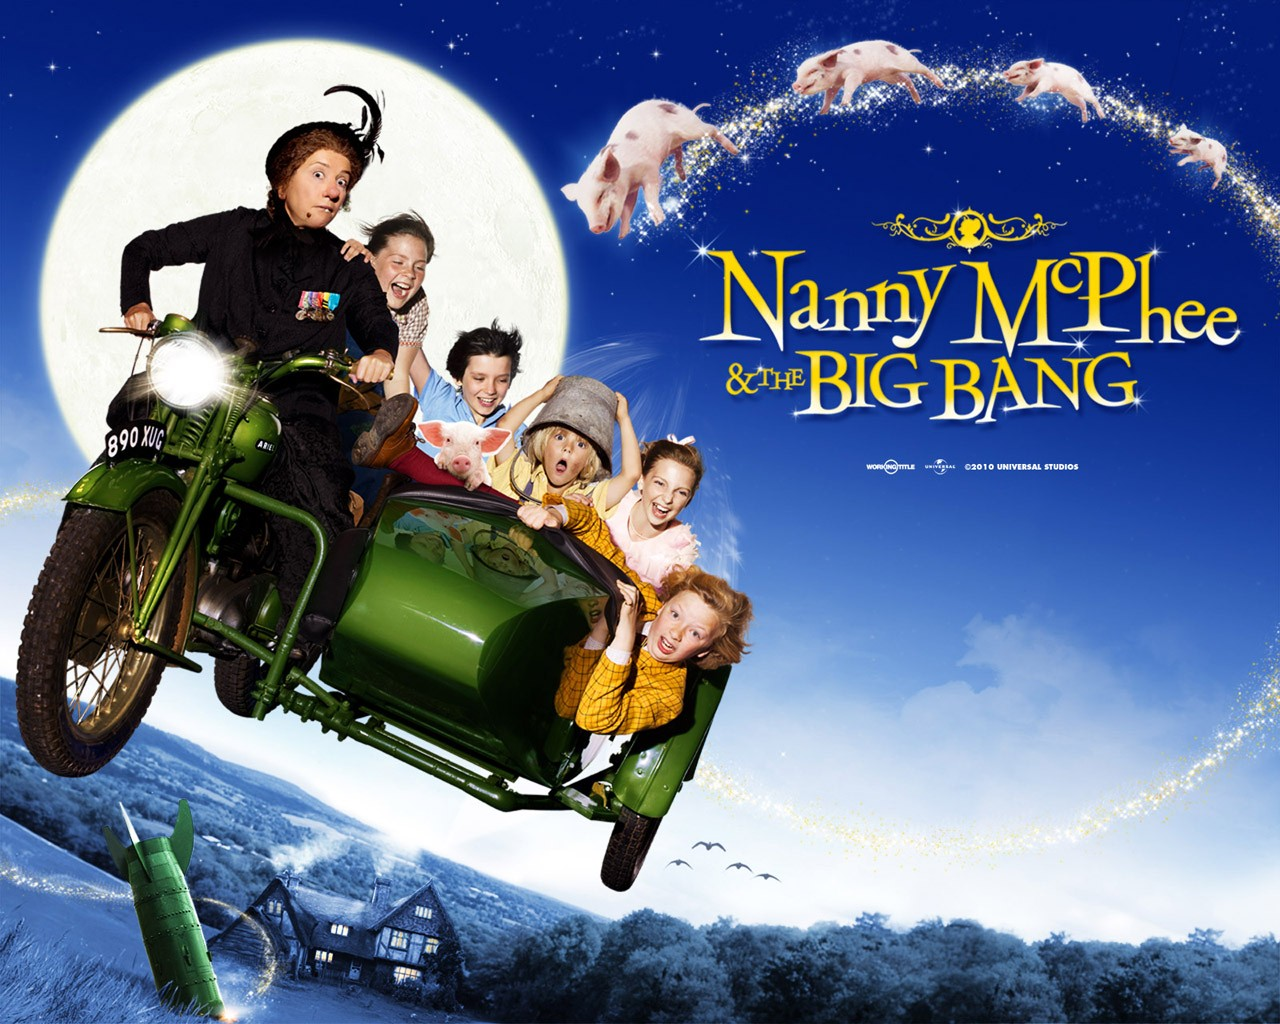 Wallpaper di Nanny McPhee and the Big Bang con tutti i protagonisti